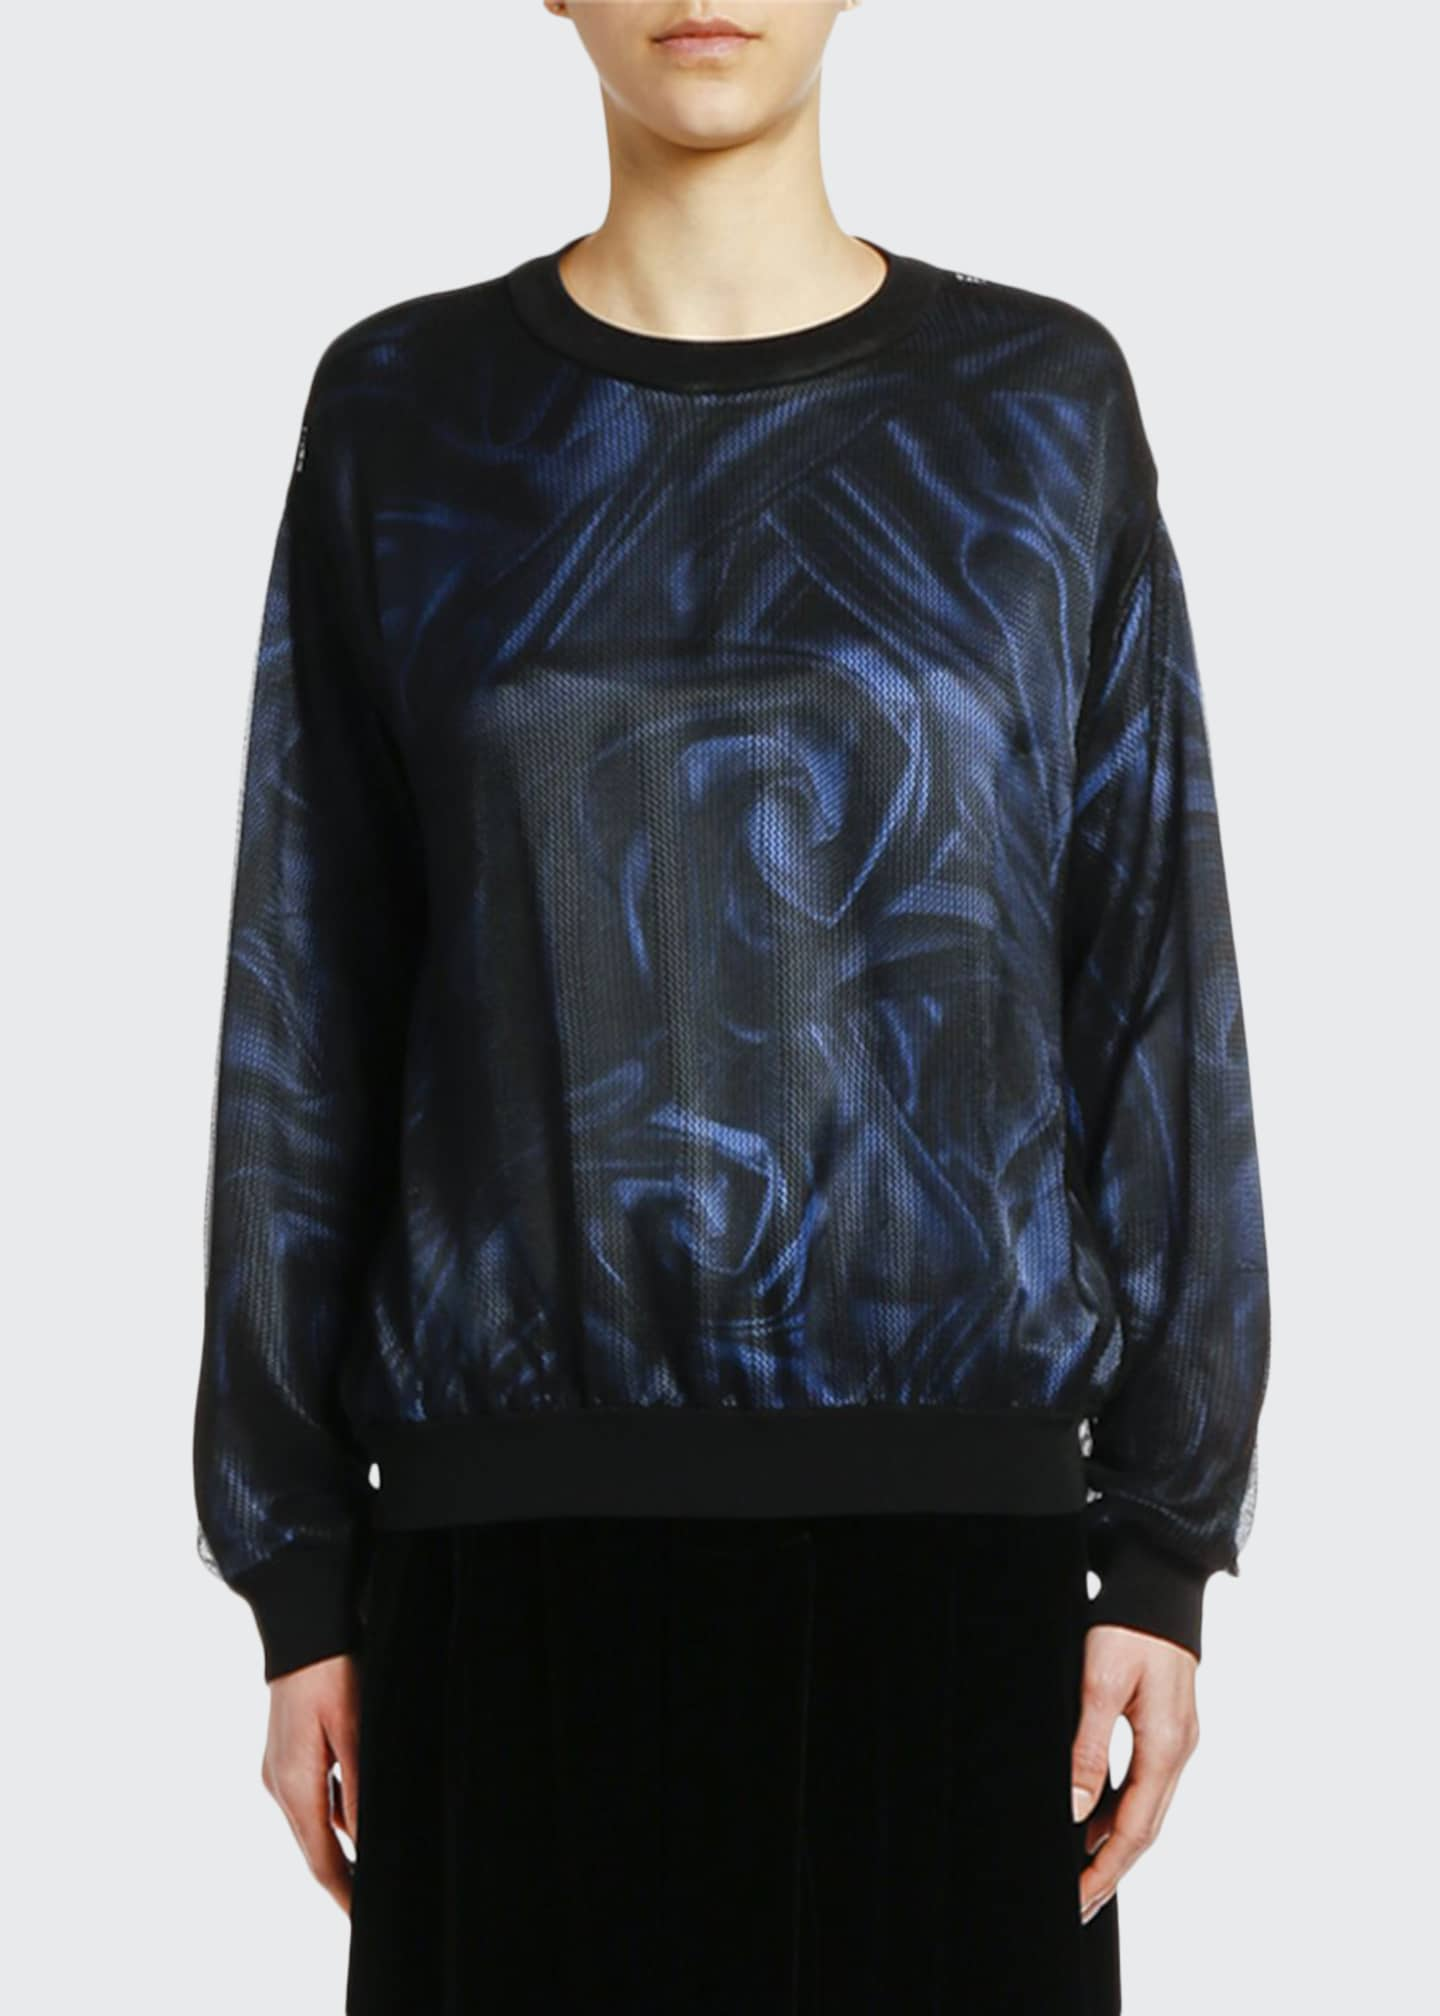 Giorgio Armani Printed Satin Top with Mesh Overlay